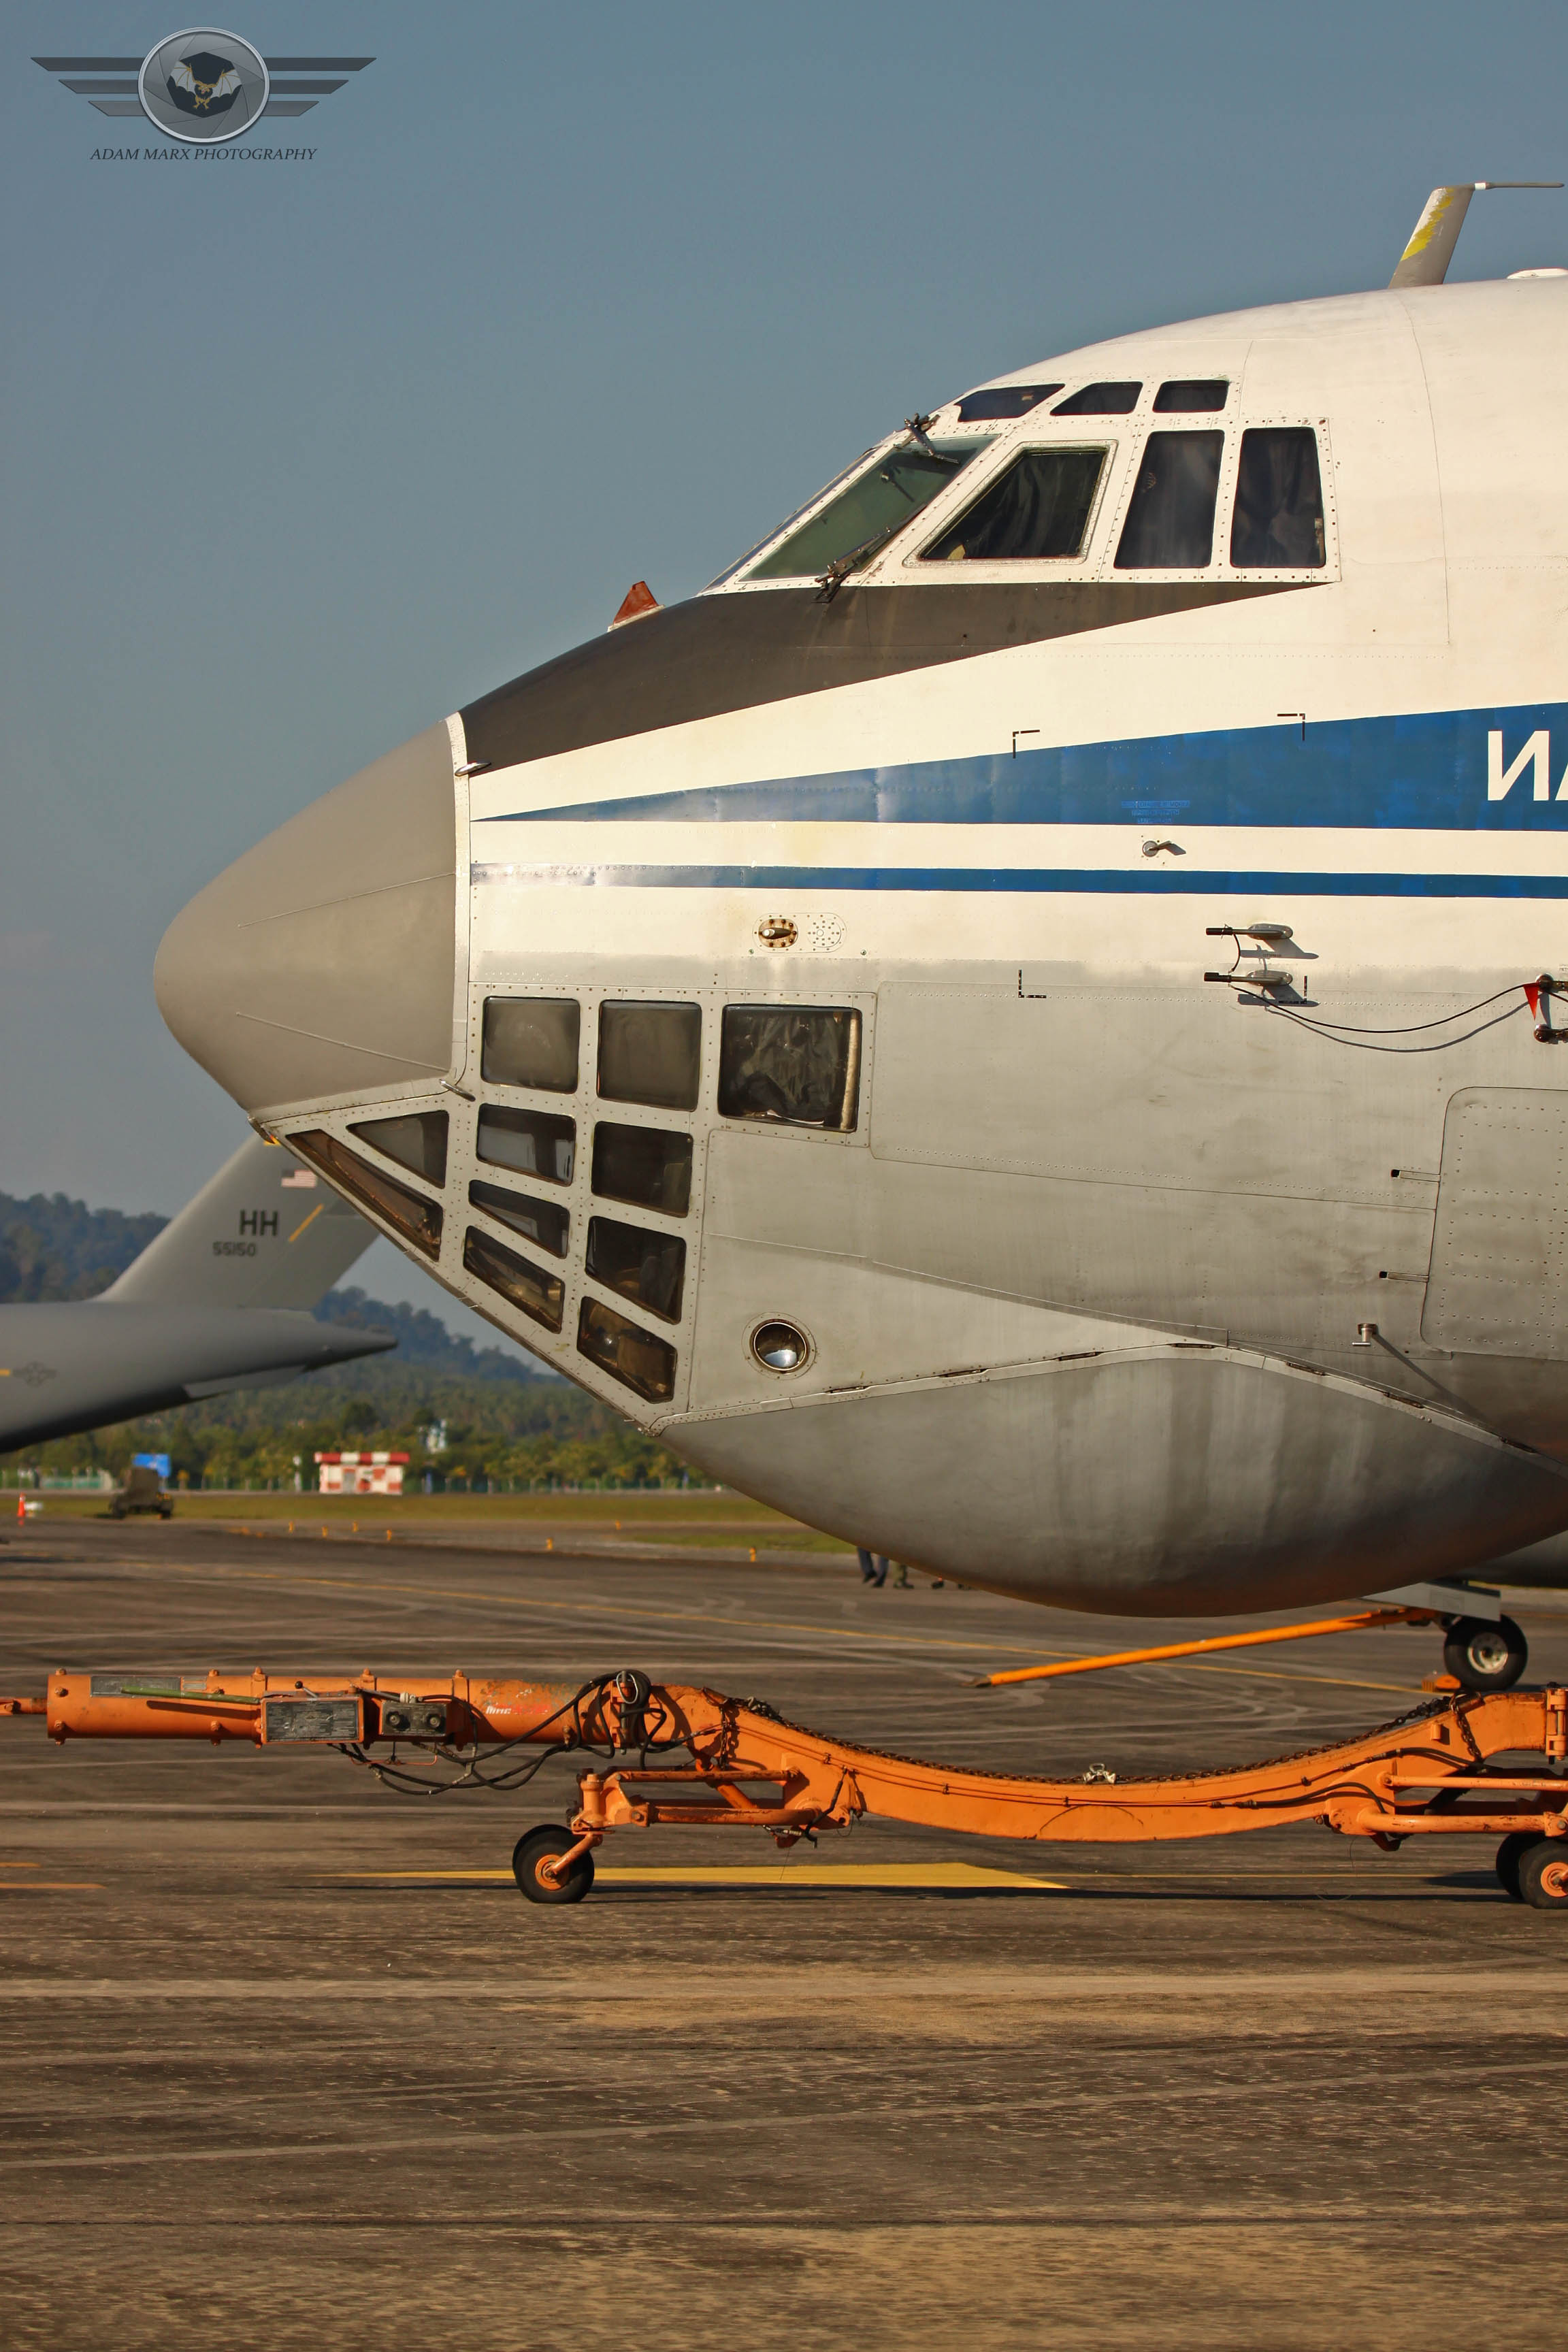 Nosebubble of the IL-76 with his own towbar.